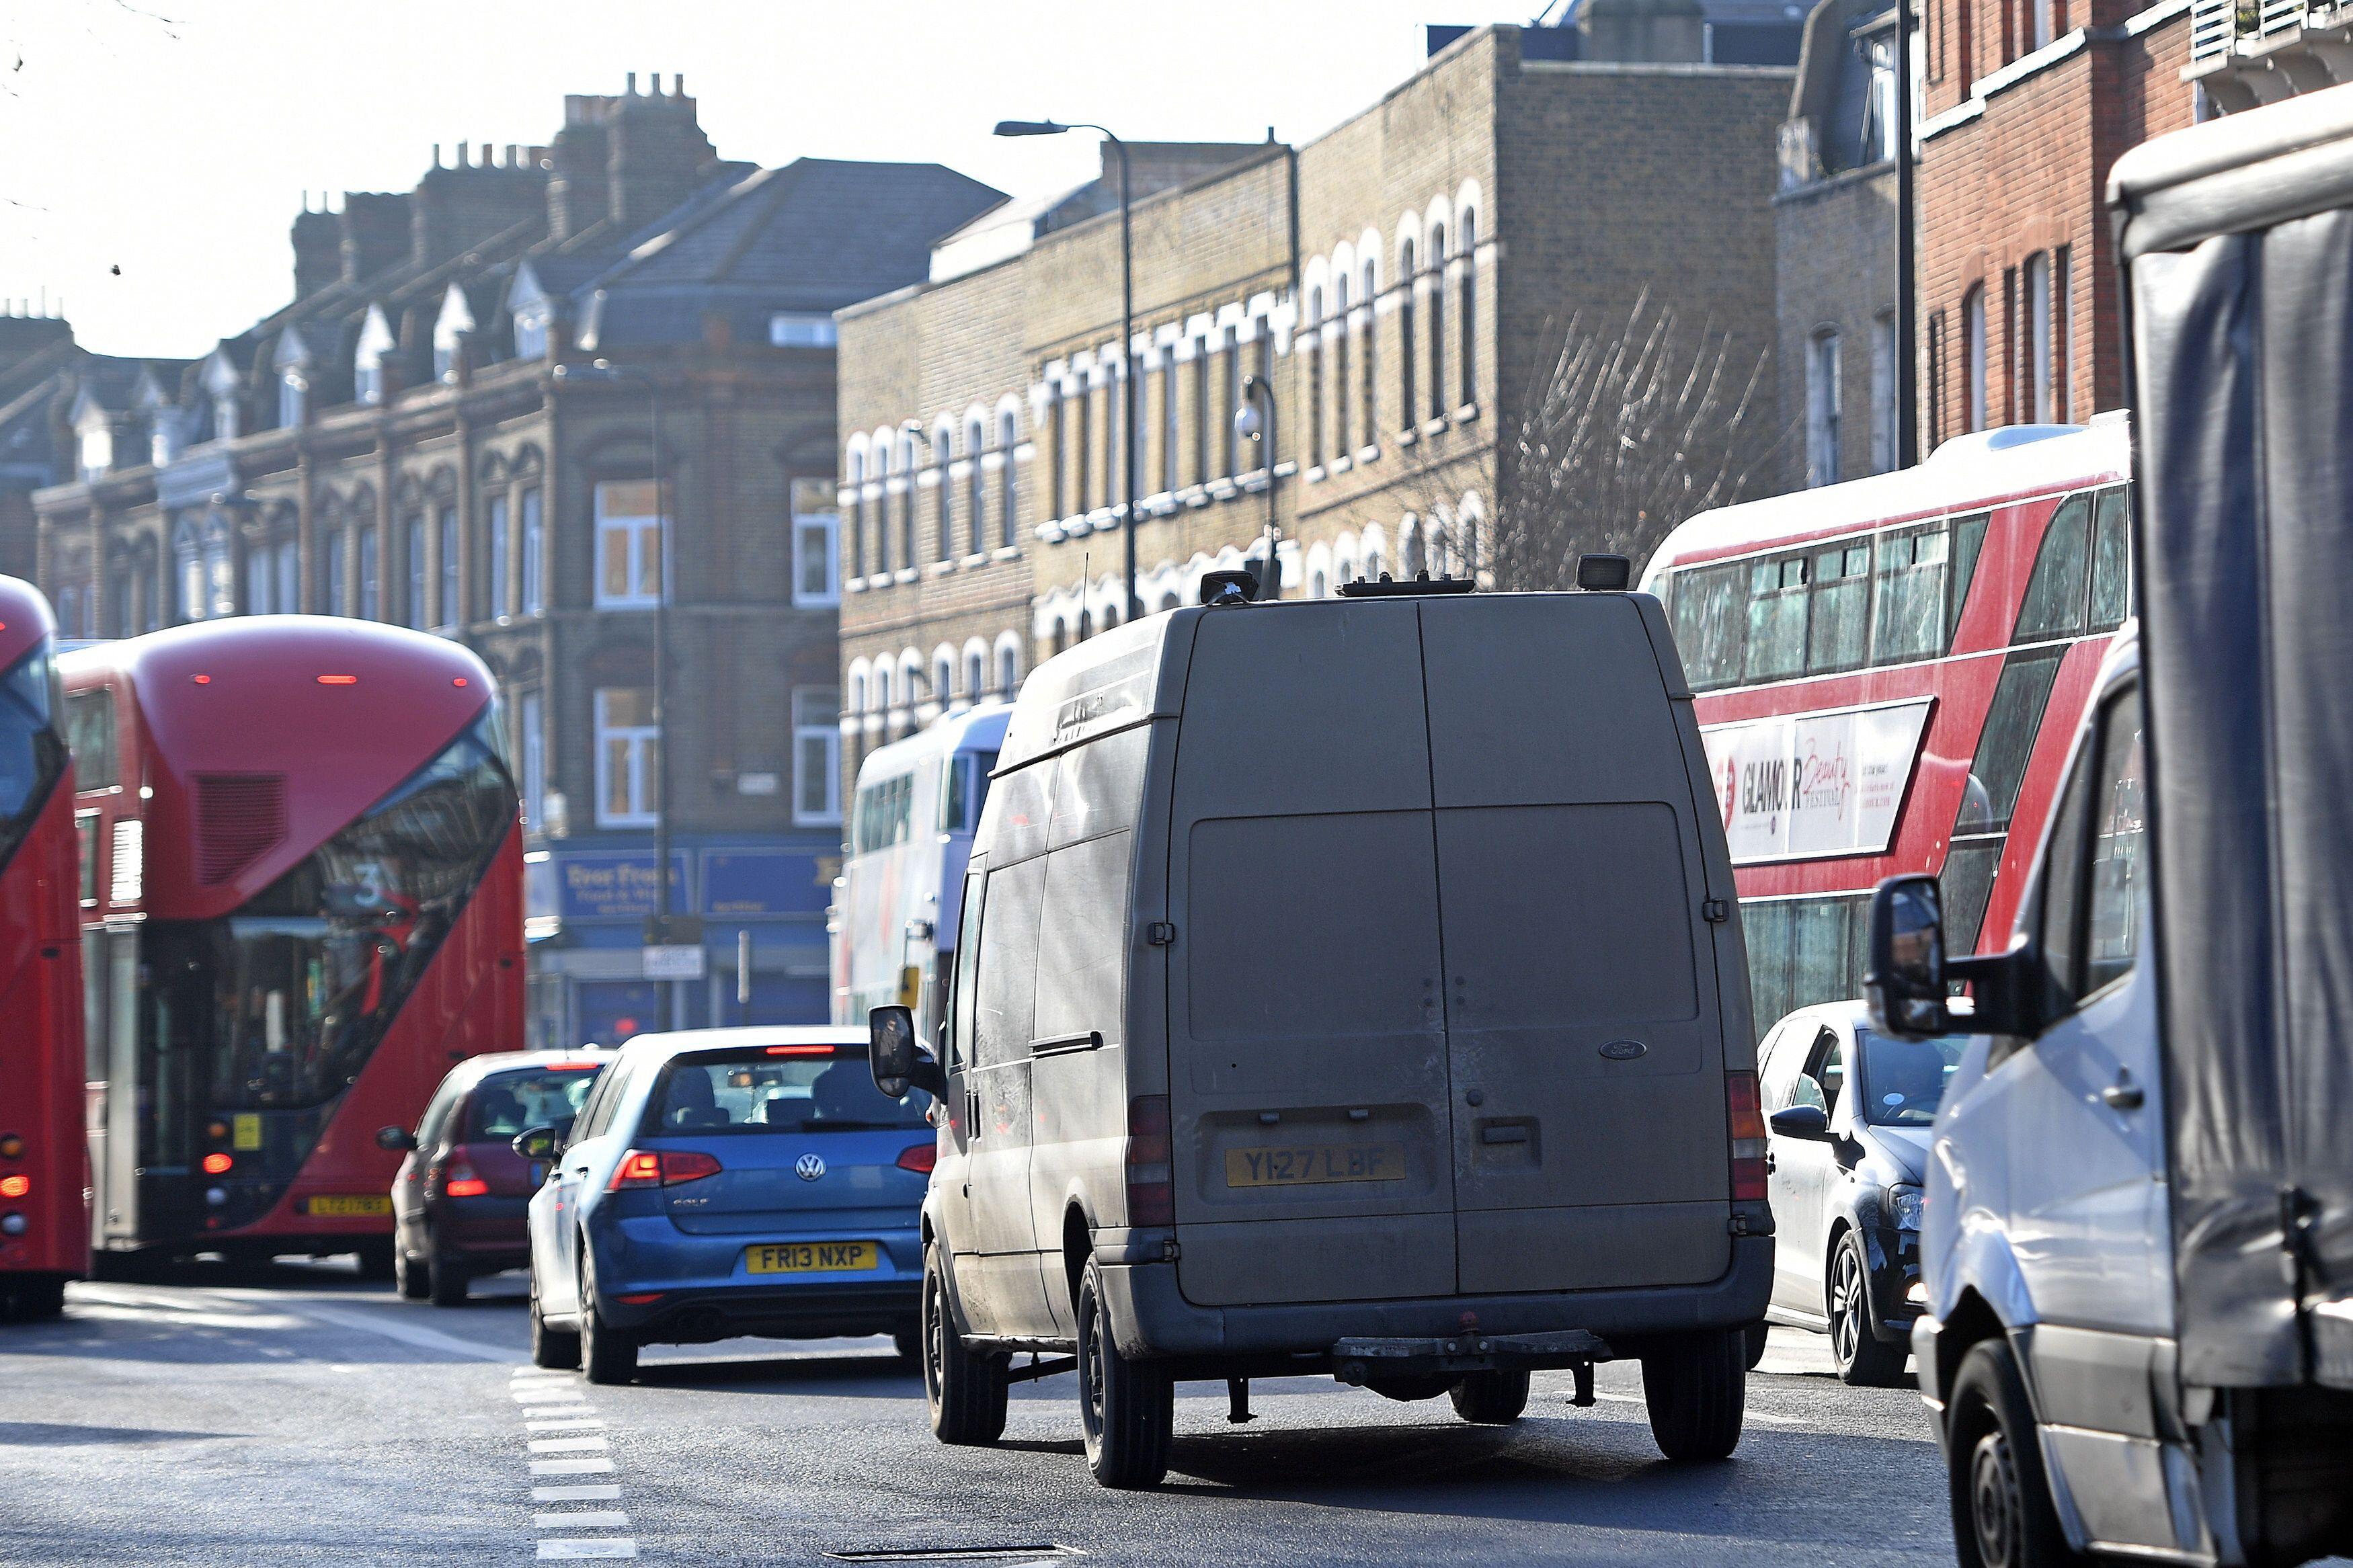 File photo dated 06/01/17 of traffic on Brixton Road in Lambeth, London, as mayors and city leaders are calling for a ??1.5 billion Government fund to take polluting vehicles off the UK's streets and improve air quality.